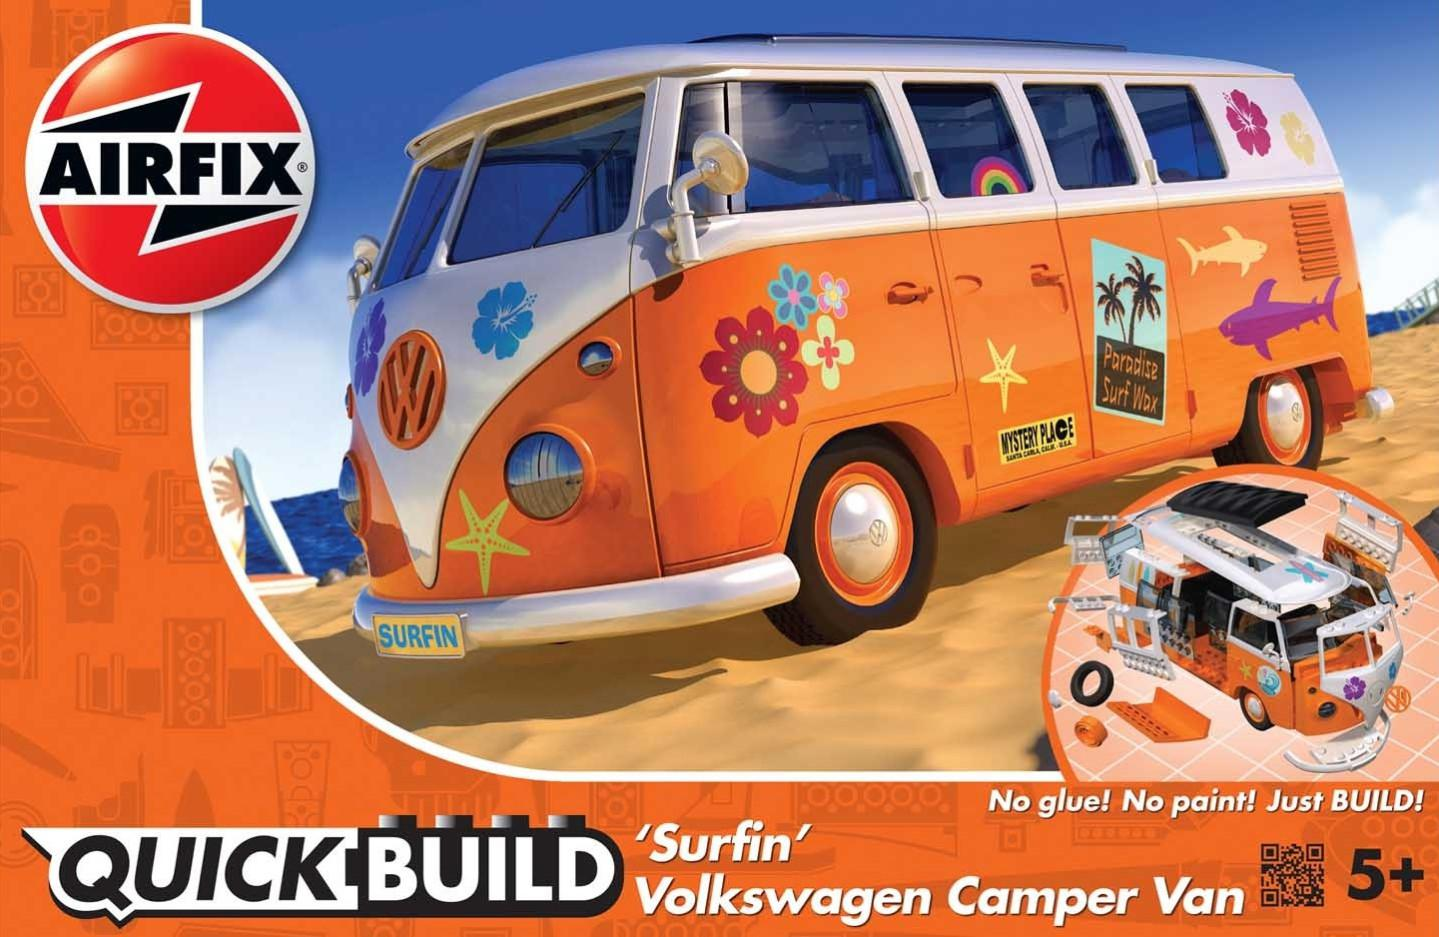 Airfix VW Camper Surfin Qiuck Build J6032